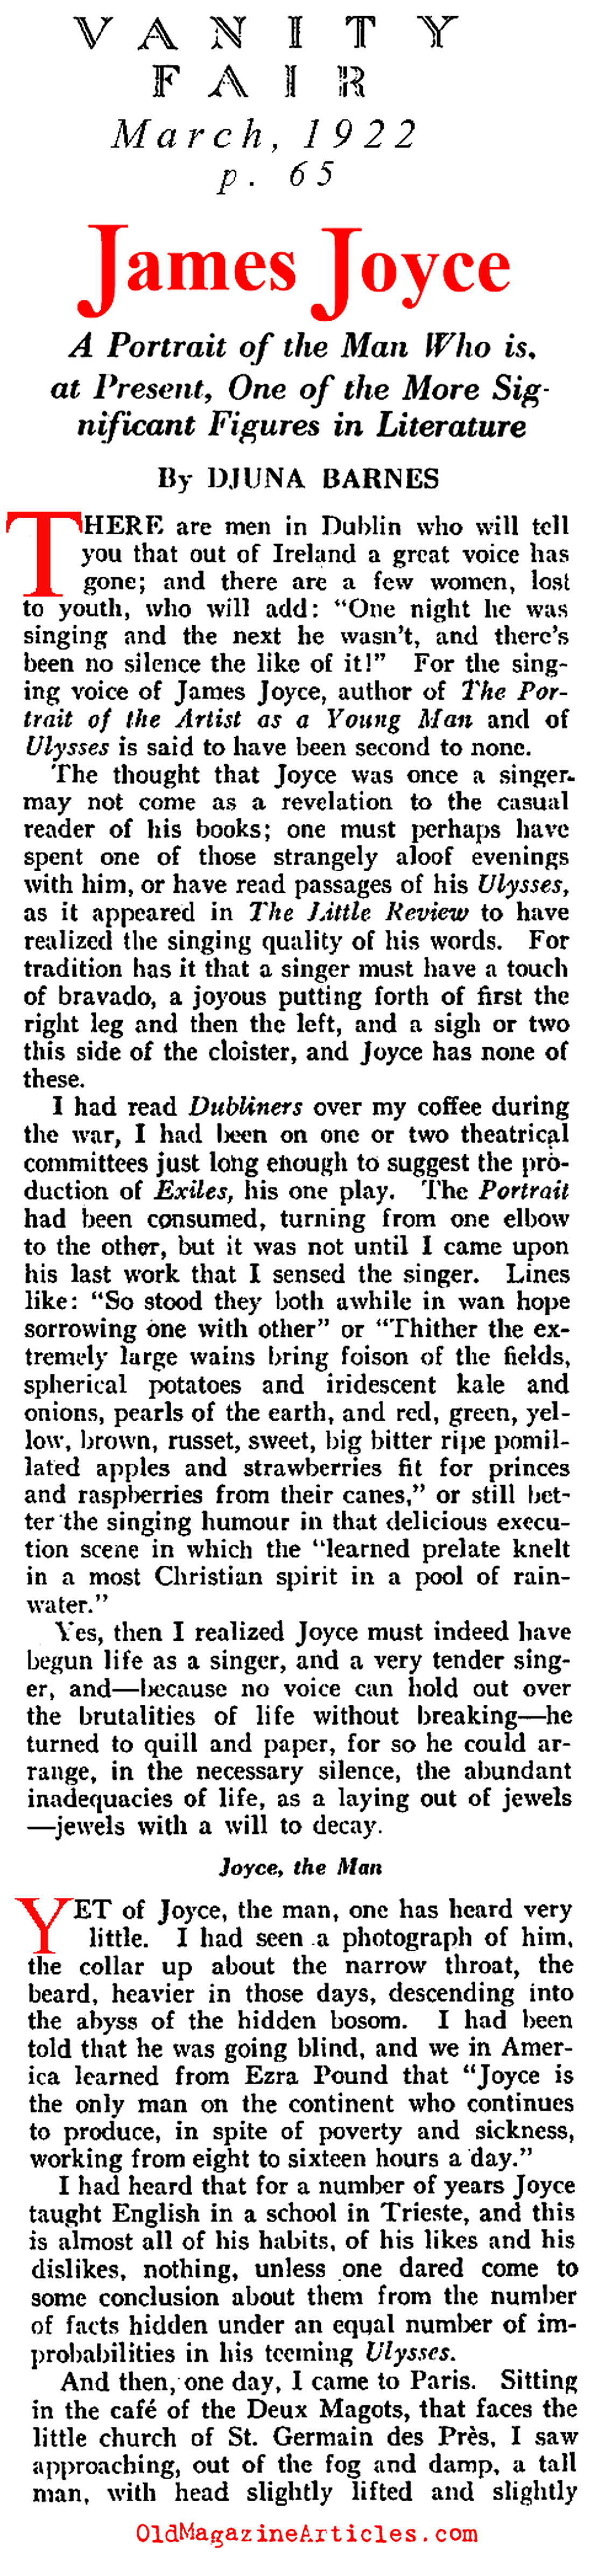 An Interview With James Joyce (Vanity Fair, 1922)